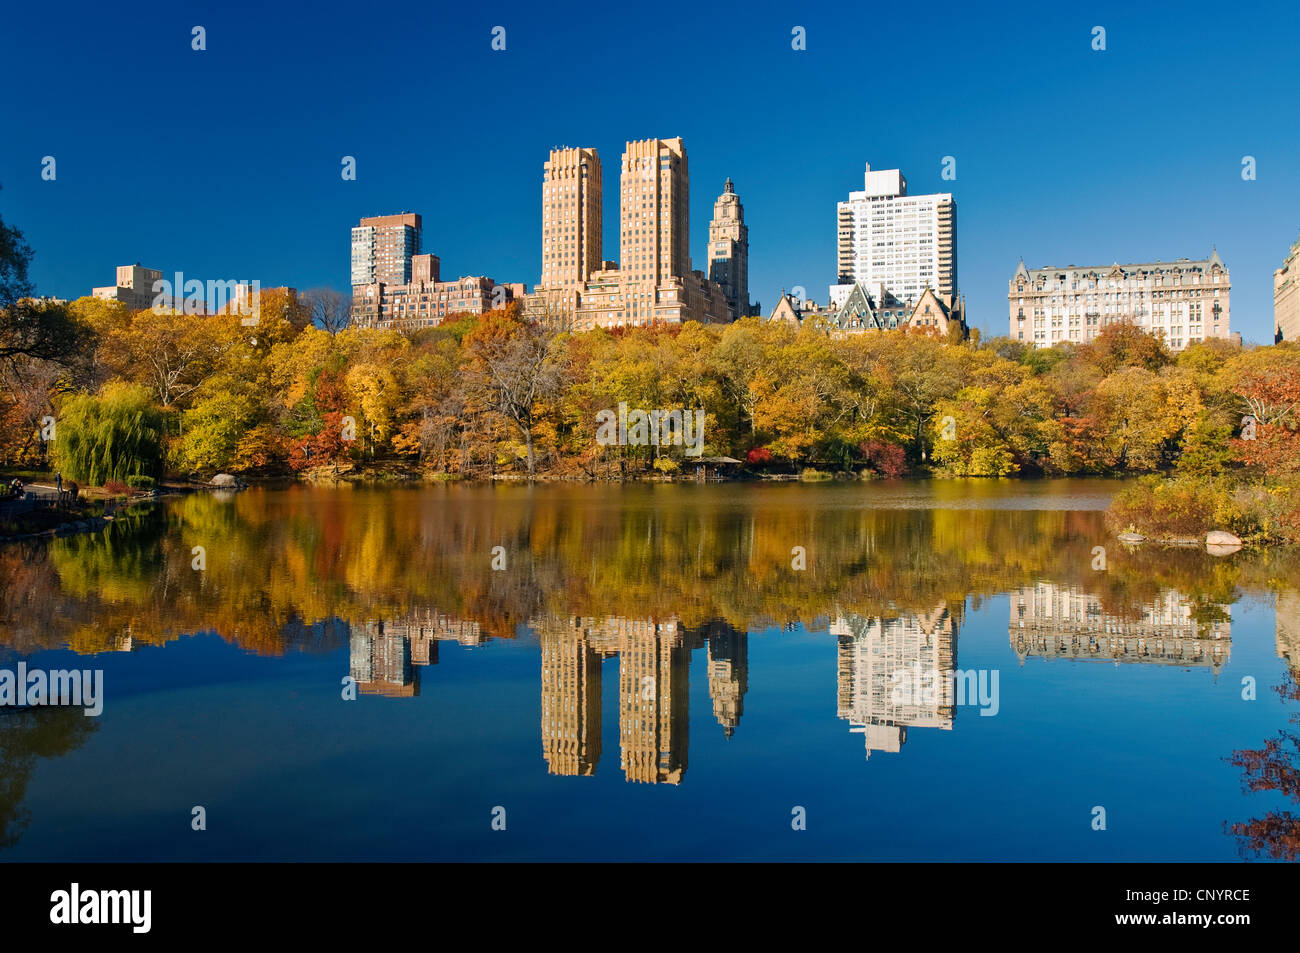 Central Park, New York City in Autumn at The Lake with Central Park West Skyline and the Dakota Apartments. - Stock Image